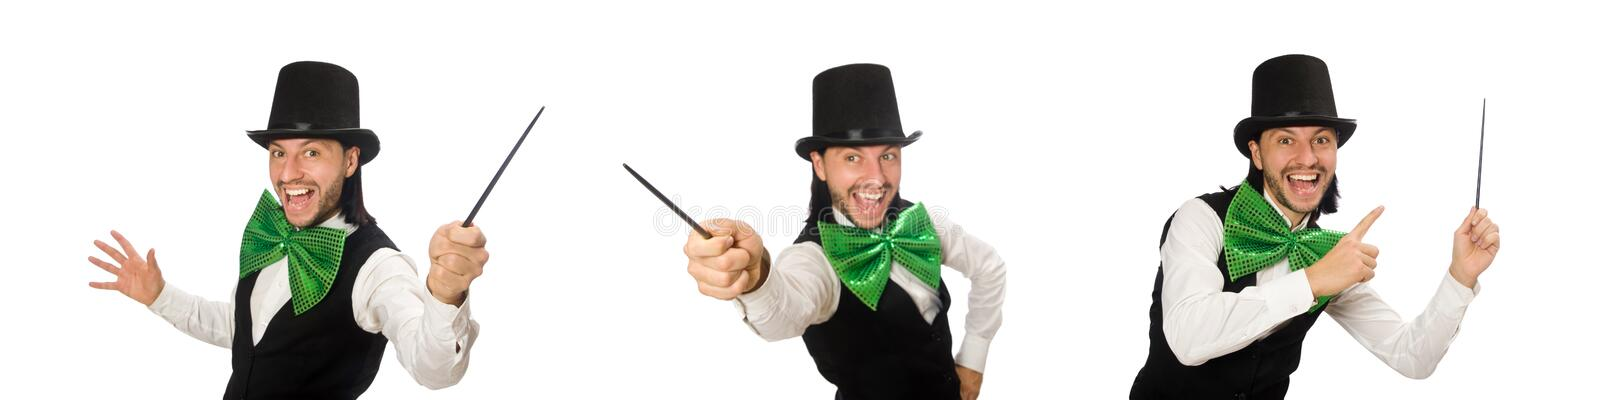 Man with big green bow tie in funny concept stock photos